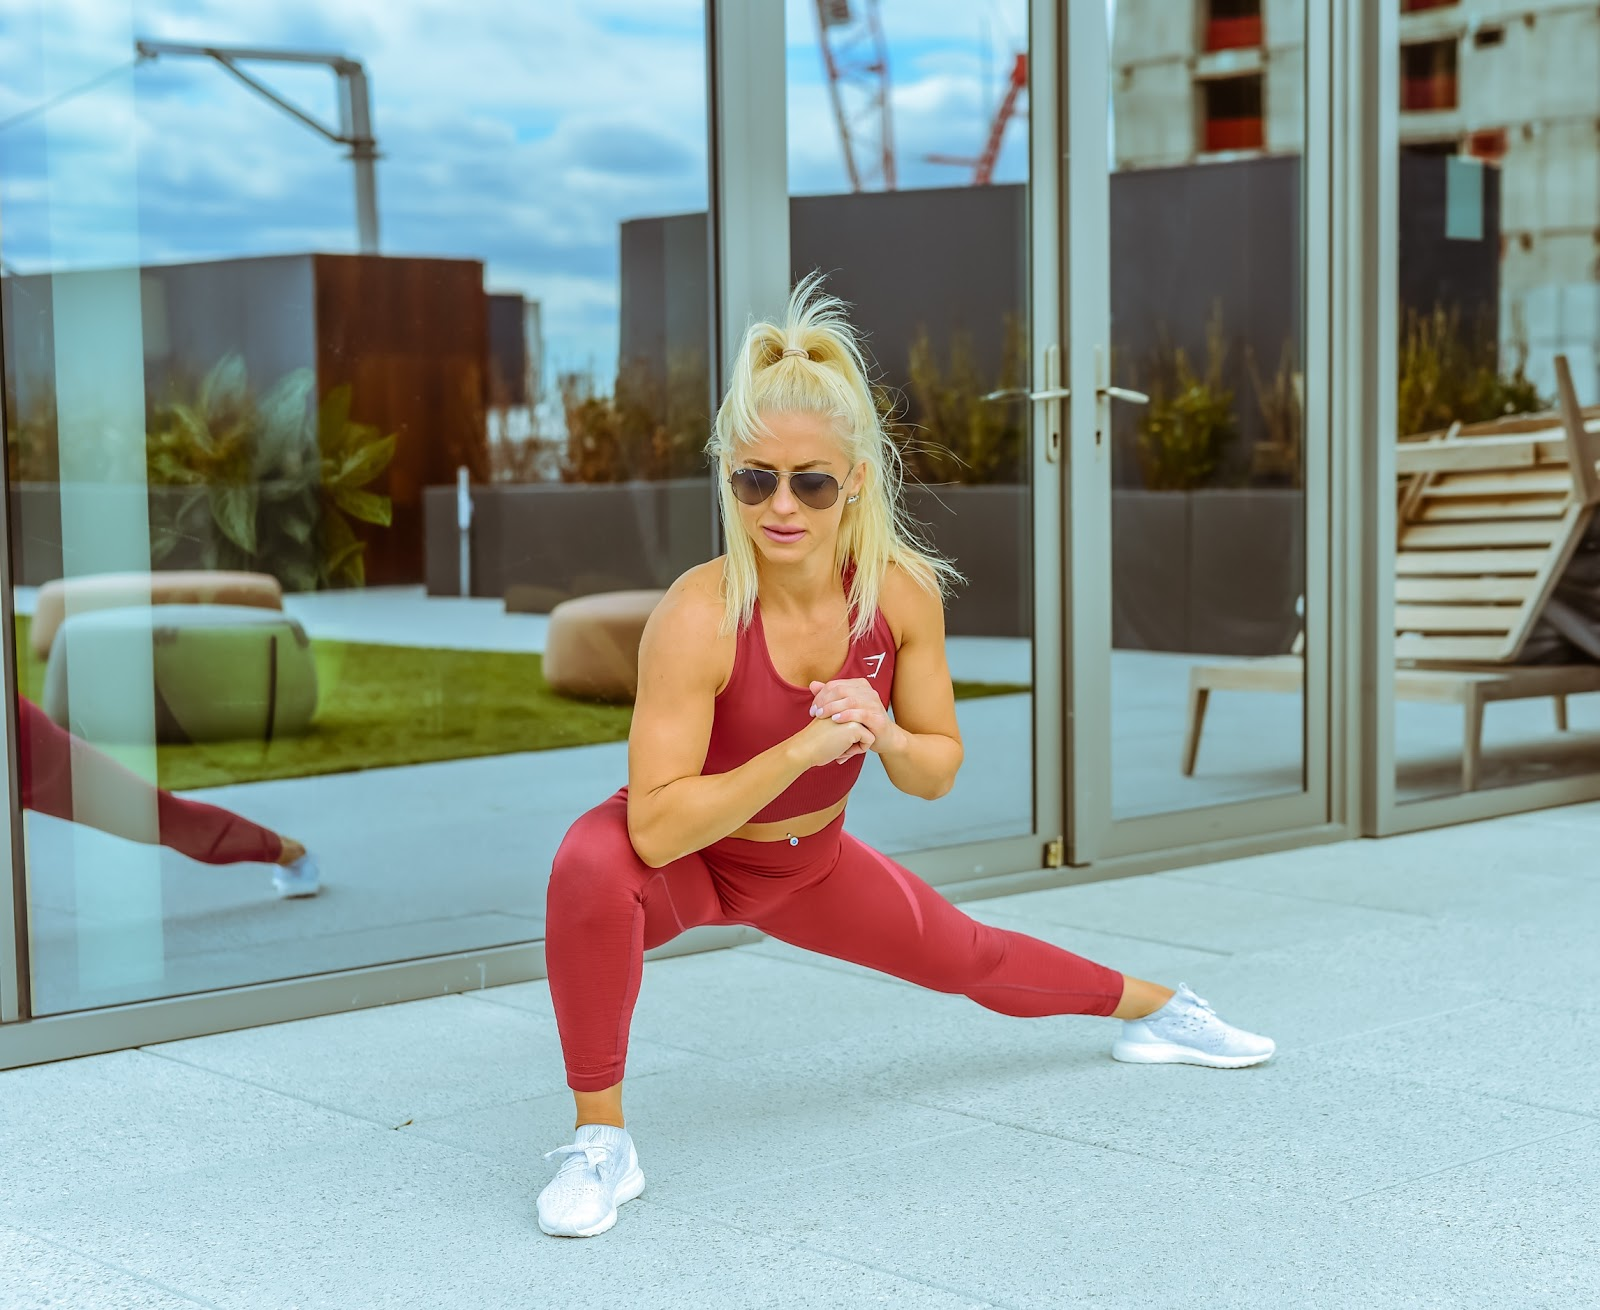 Ana Snyder, How to Get Fit: Change Your Mindset and Stop Making Excuses